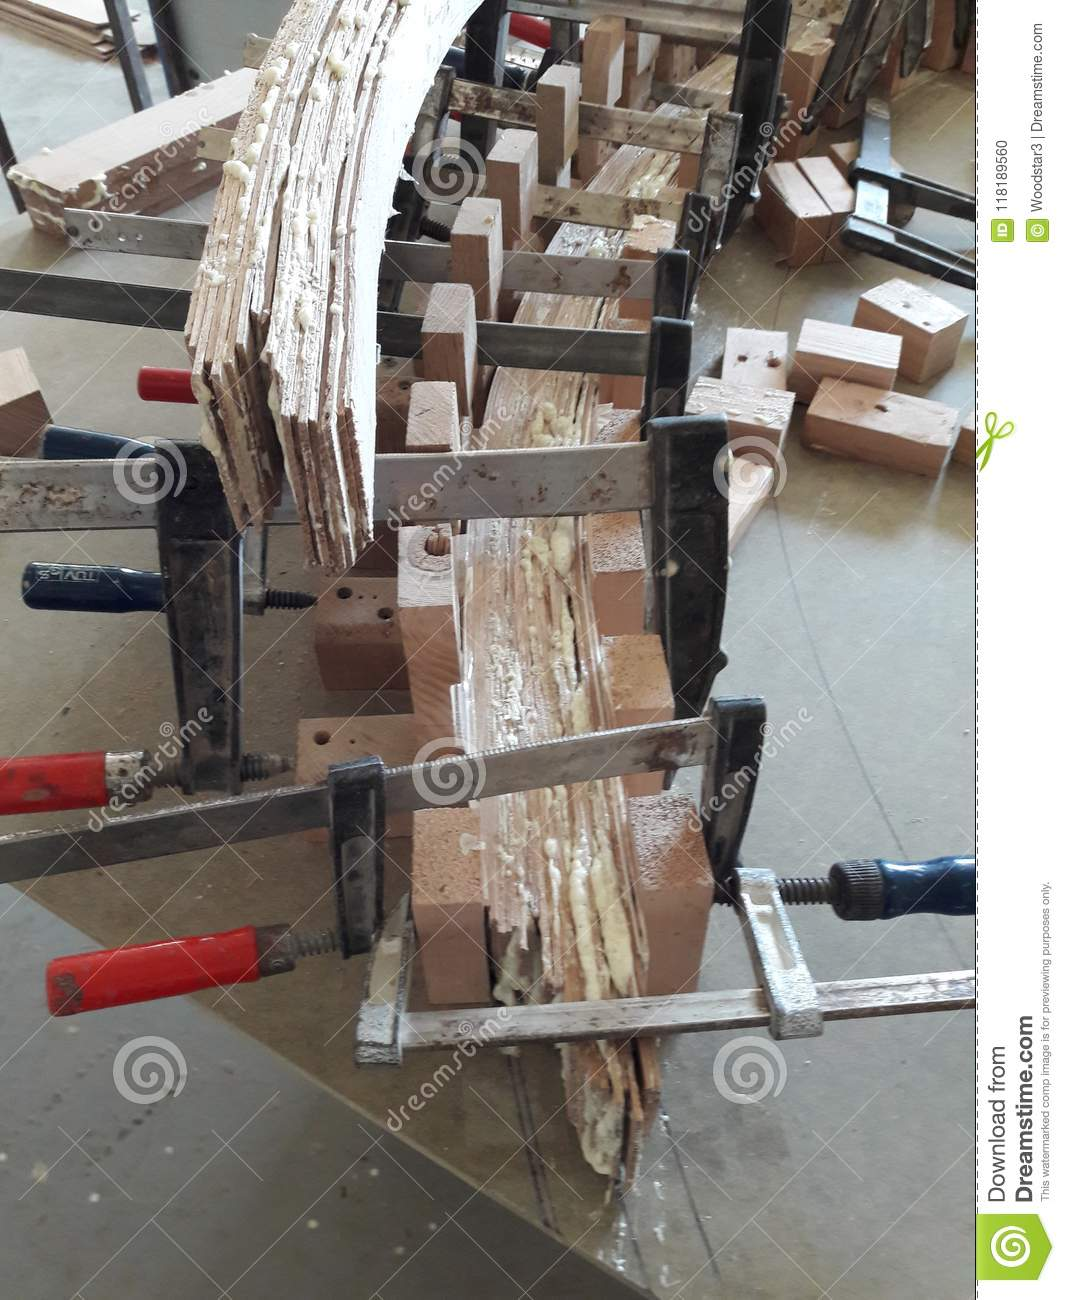 Manufacturing Of Curved Handrails For A Spiral Staircase.